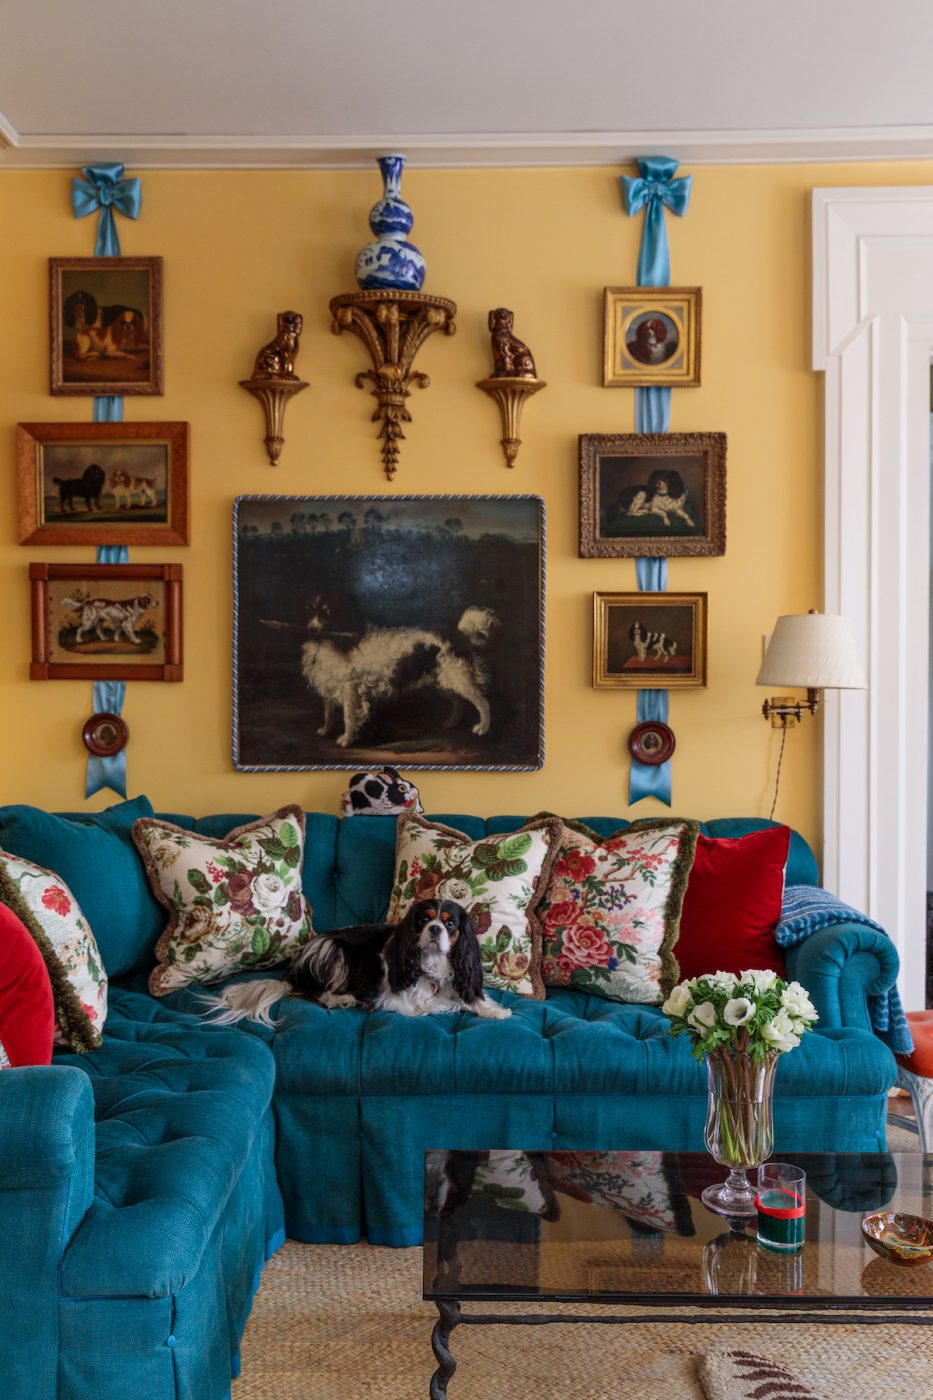 Christopher Spitzmiller's Cavalier King Charles spaniel, Fanny, rest on the sofa before a wall of spaniel portraits that belonged to the late Mario Buatta